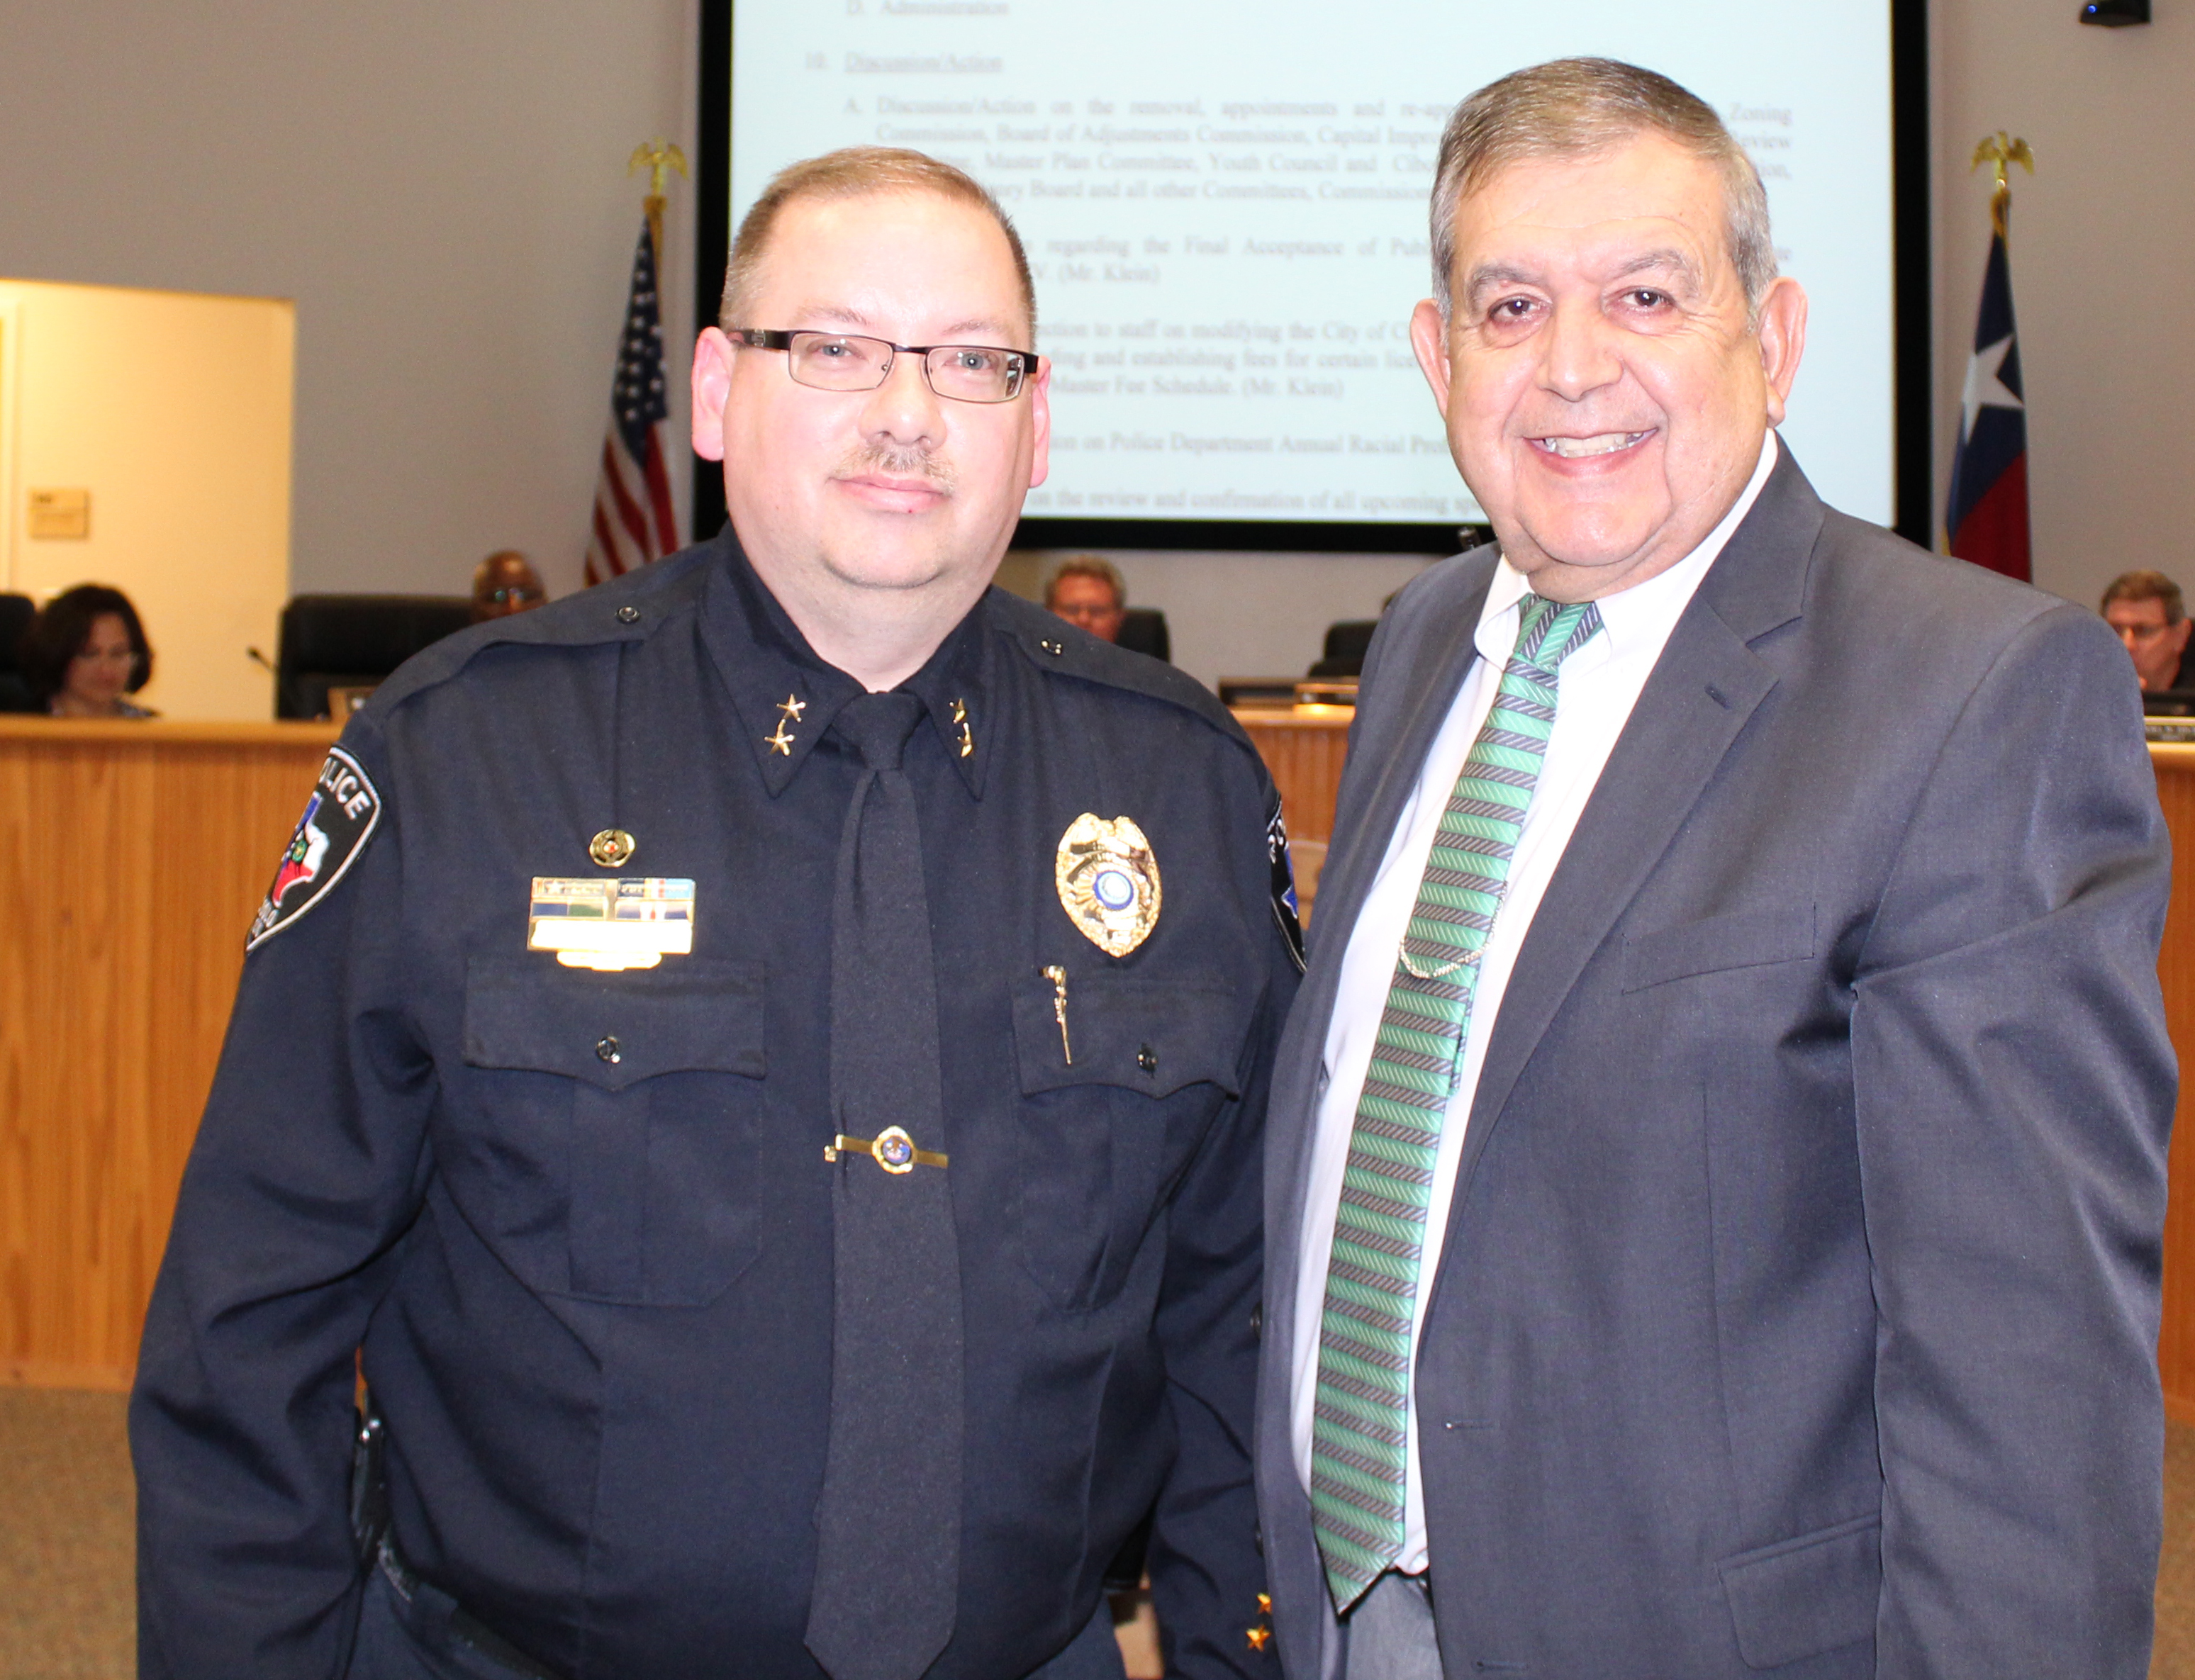 Police Chief Hugghins with Mr. Herrera